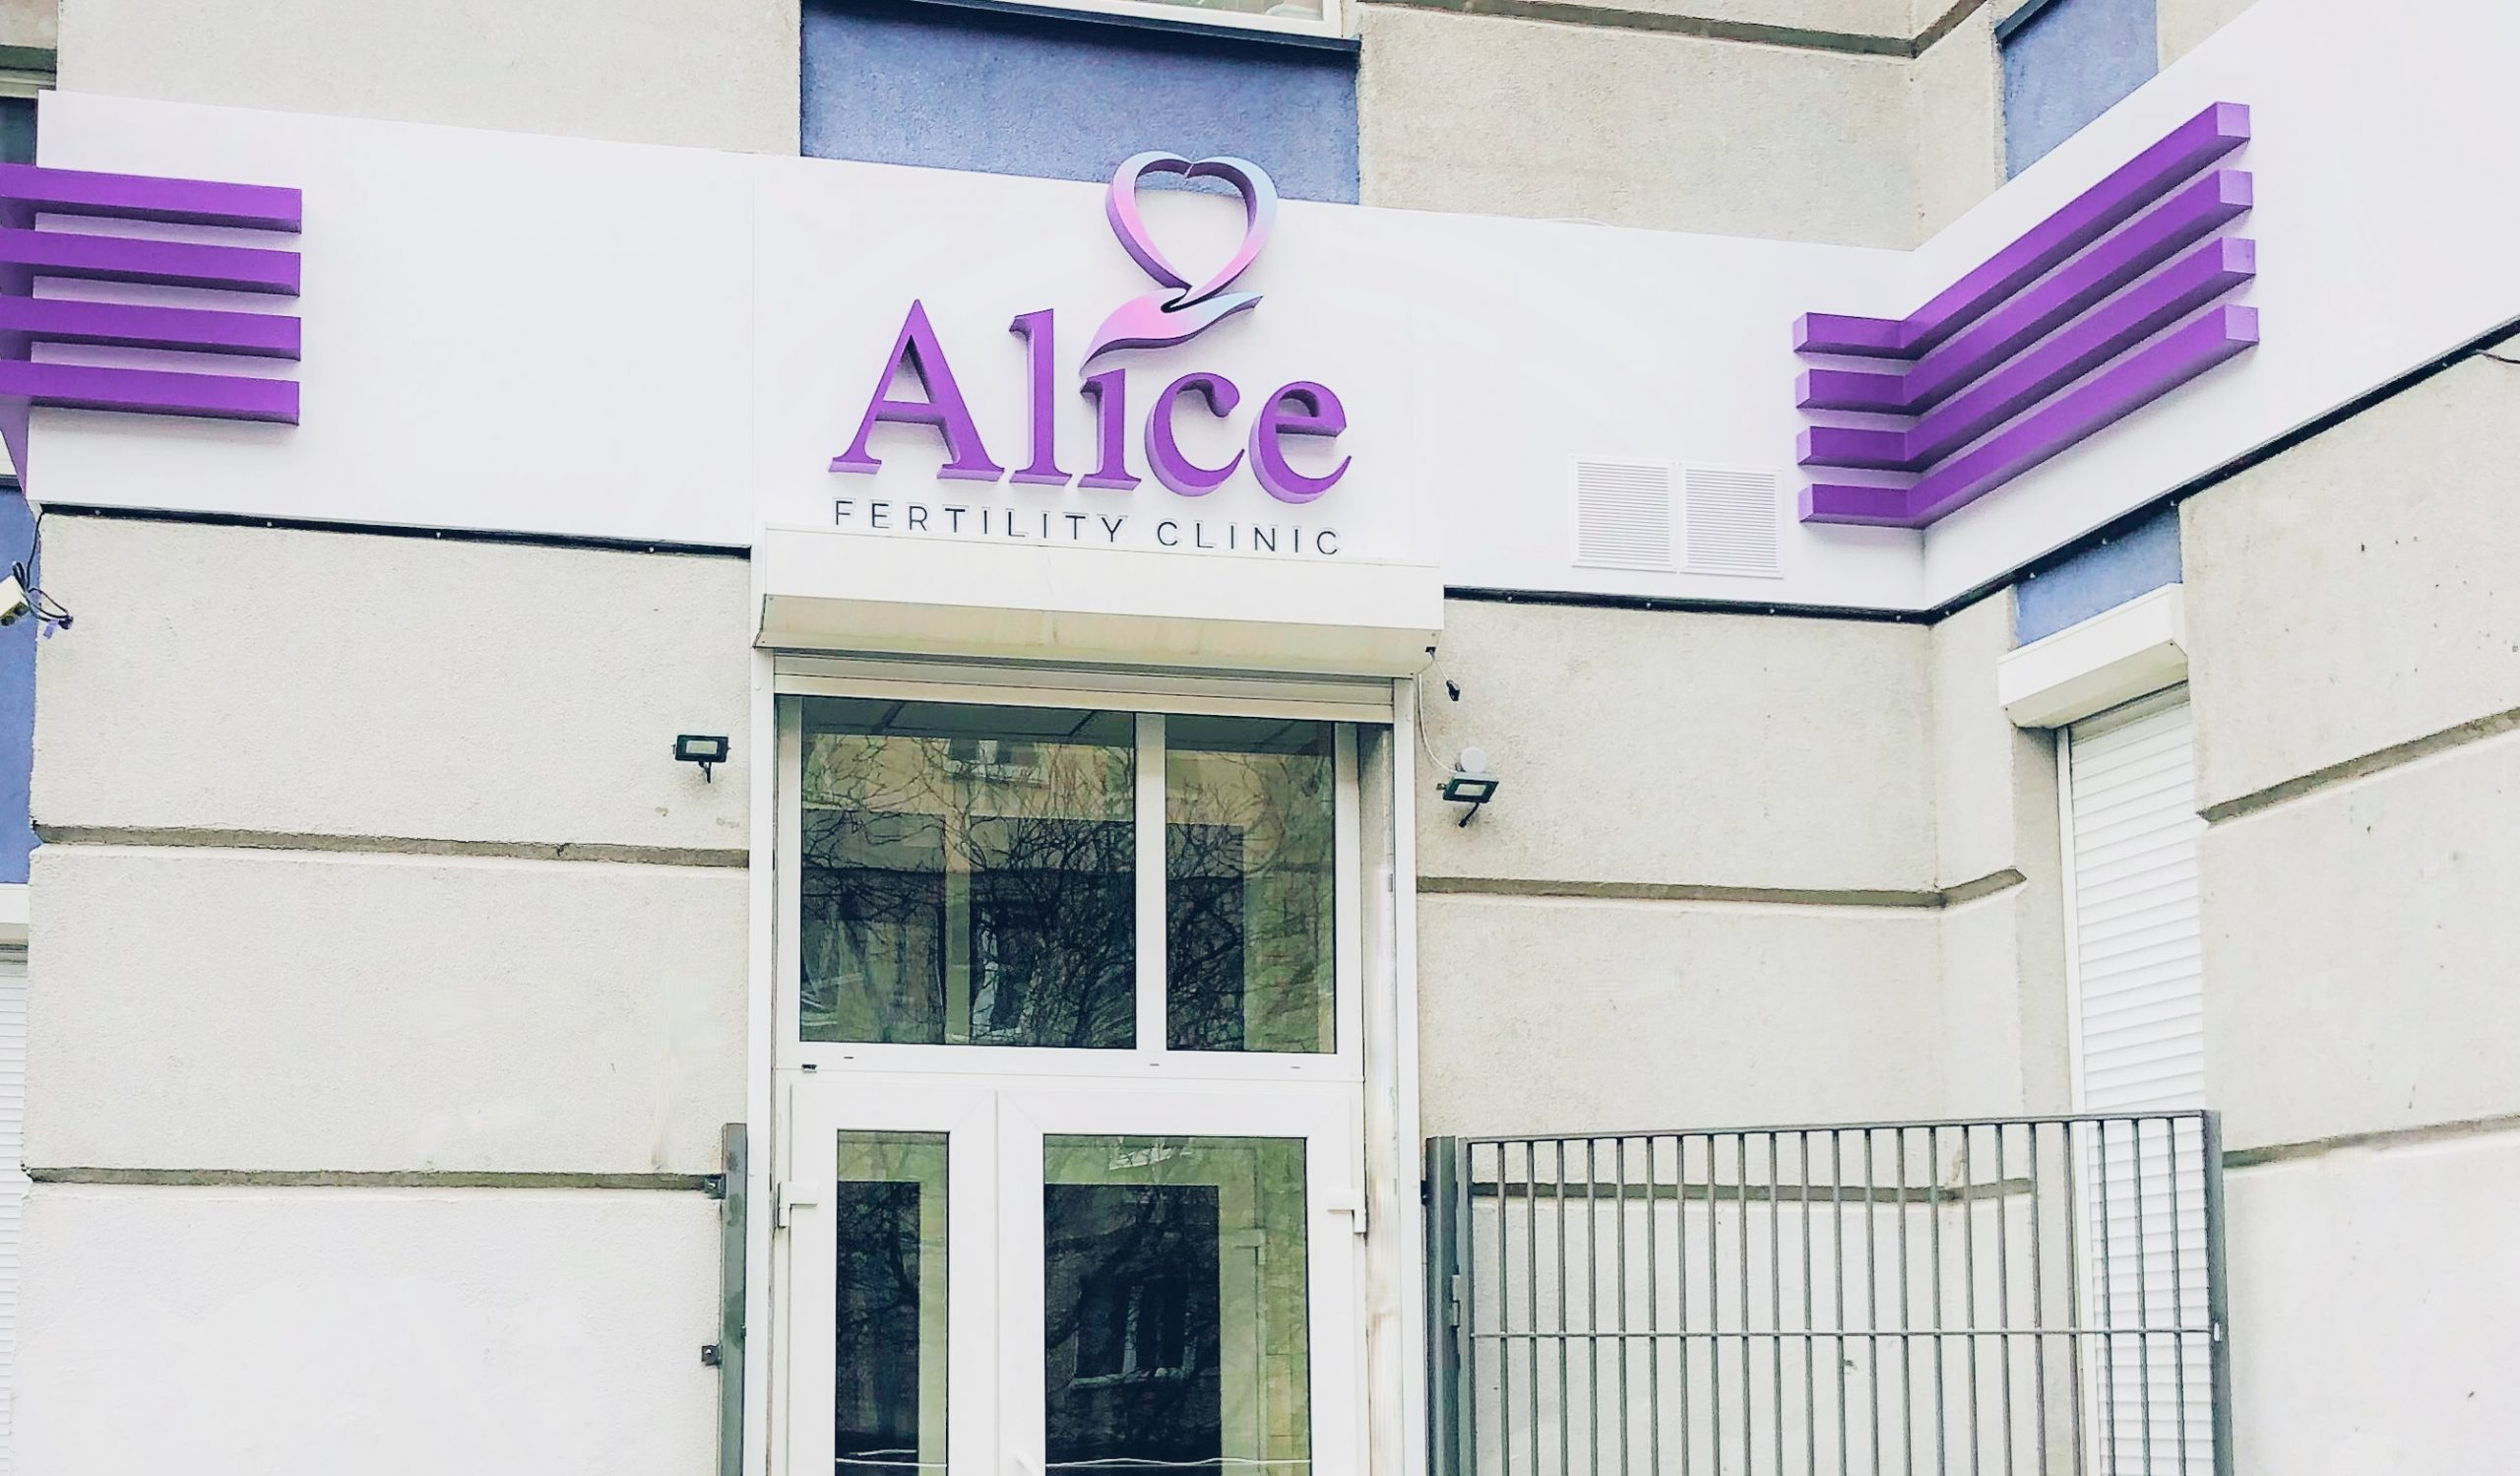 World Center of Baby is glad to announce that we are opening our fertility clinic!